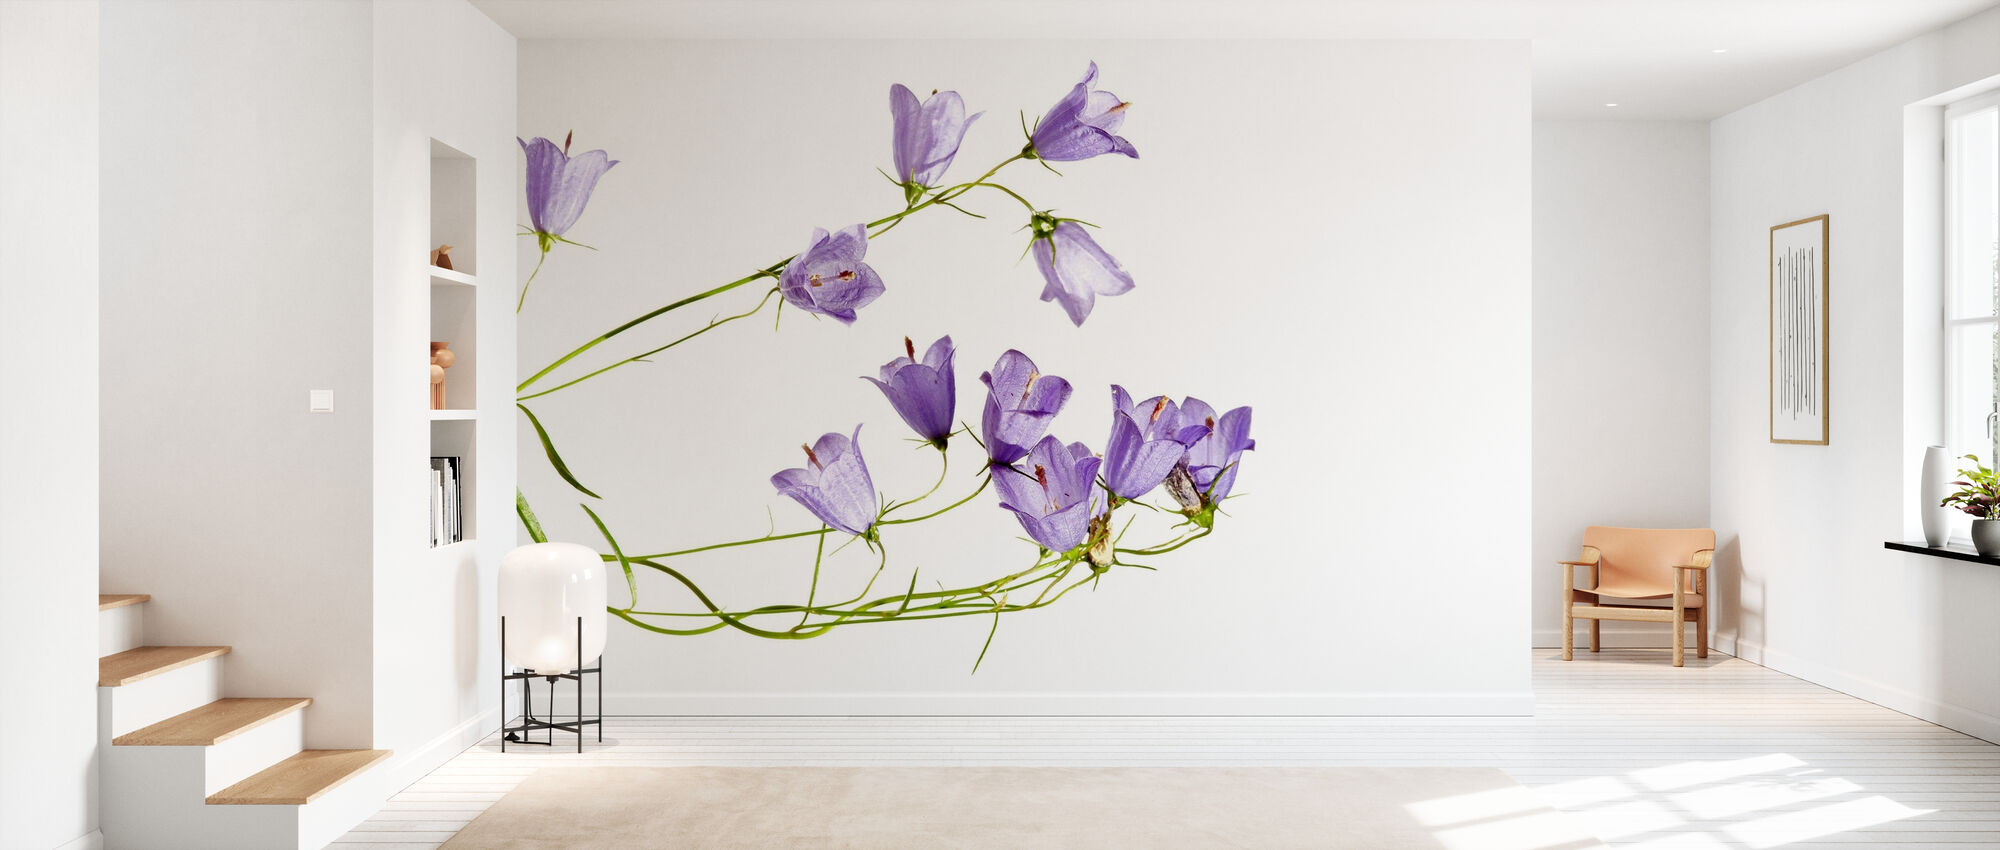 Sheer Blubells - Wallpaper - Hallway